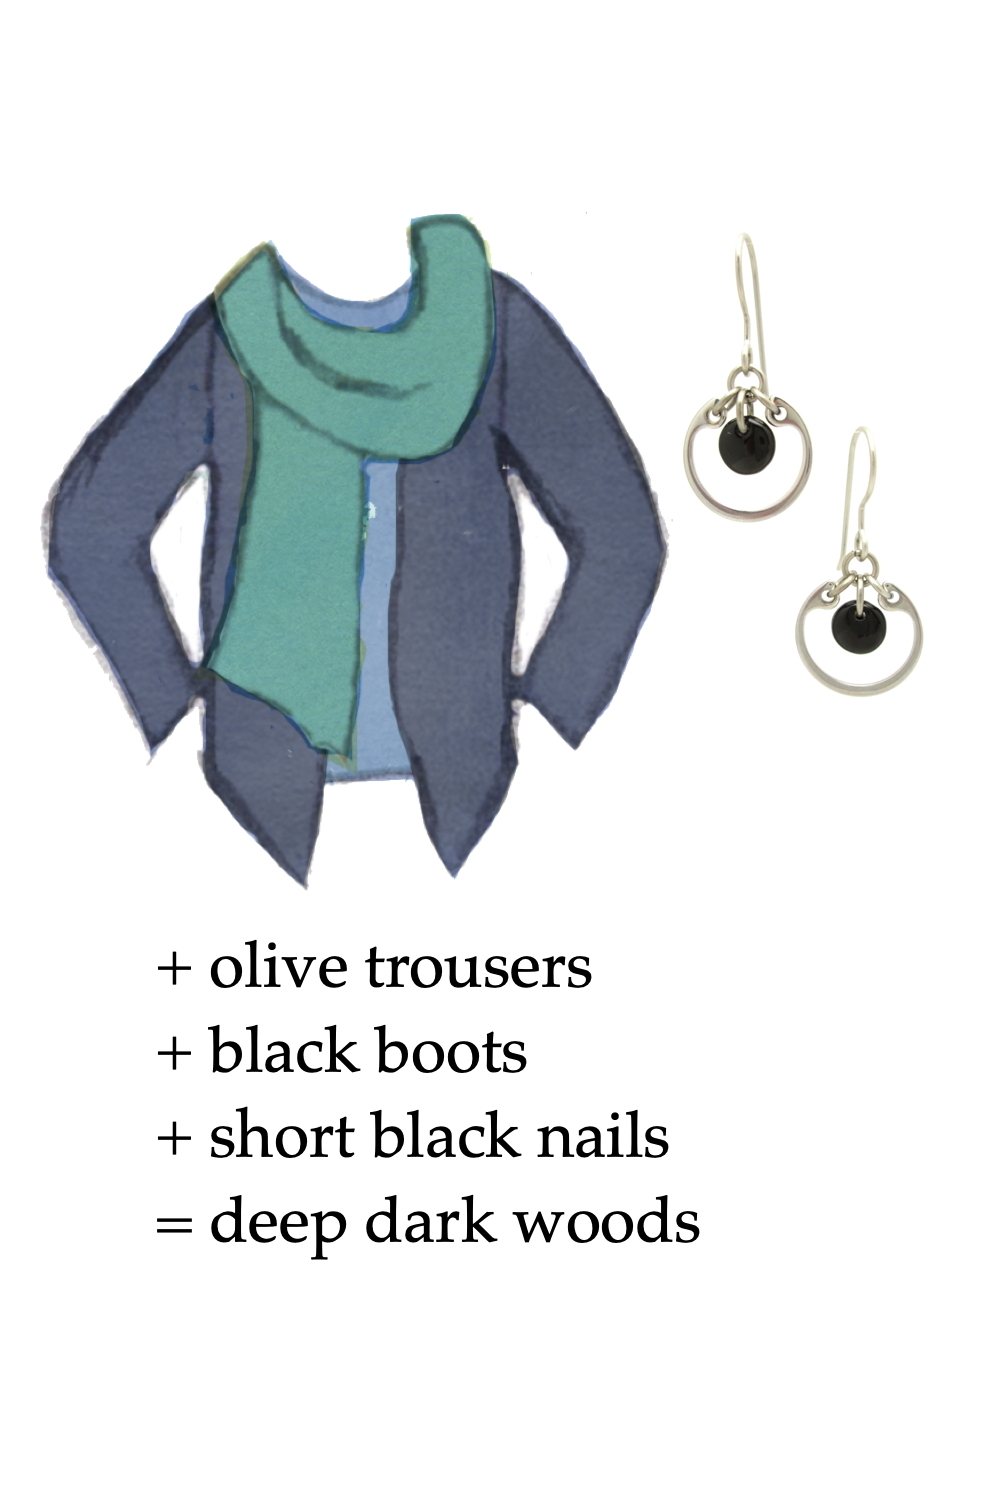 Style sketch of an outfit idea in shades of blue, with a pale blue tee, turquoise scarf, & dusty indigo cardigan, with Wraptillion's small modern circle earrings in black. Text on image reads: + olive trousers + black boots + short black nails = deep dark woods